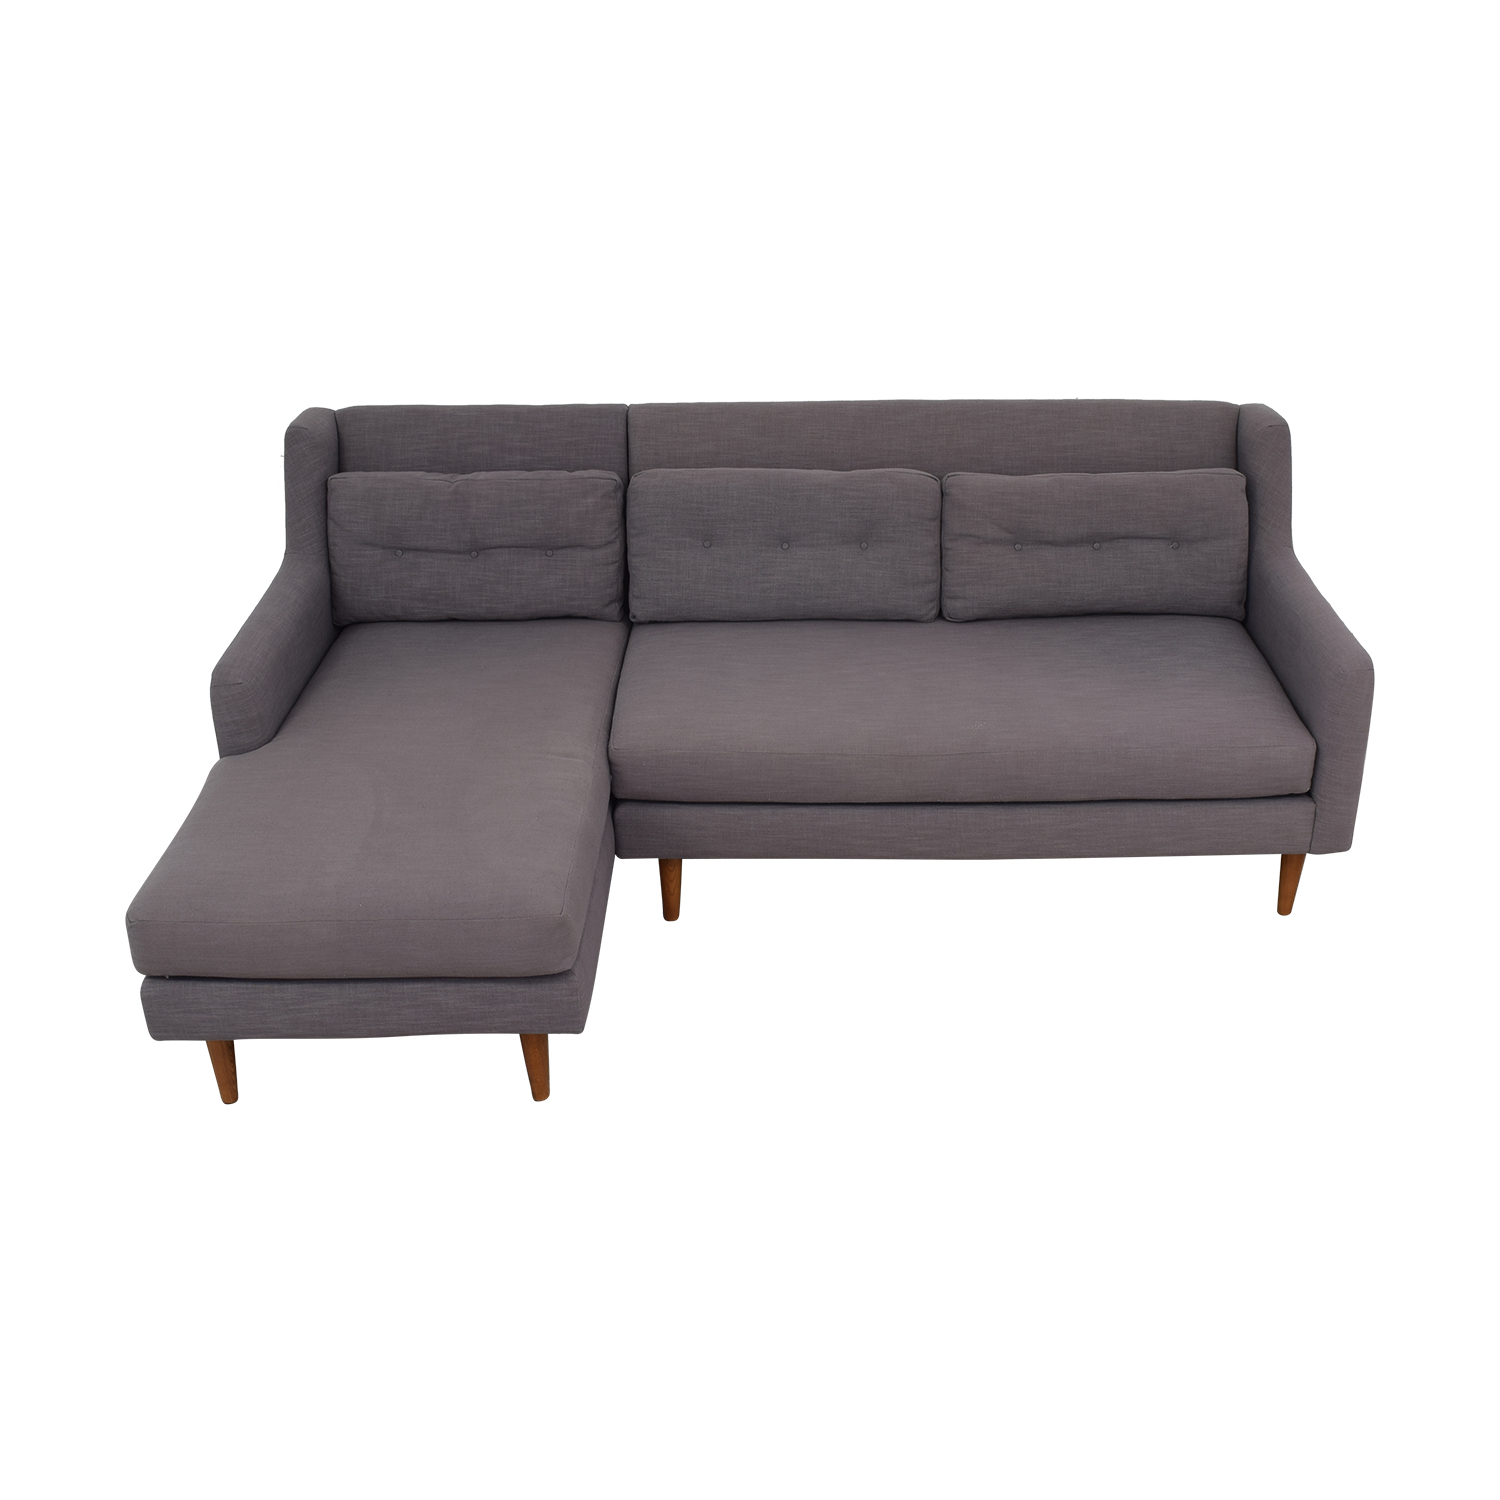 buy West Elm Crosby Mid Century Sectional Sofa with Chaise West Elm Sectionals